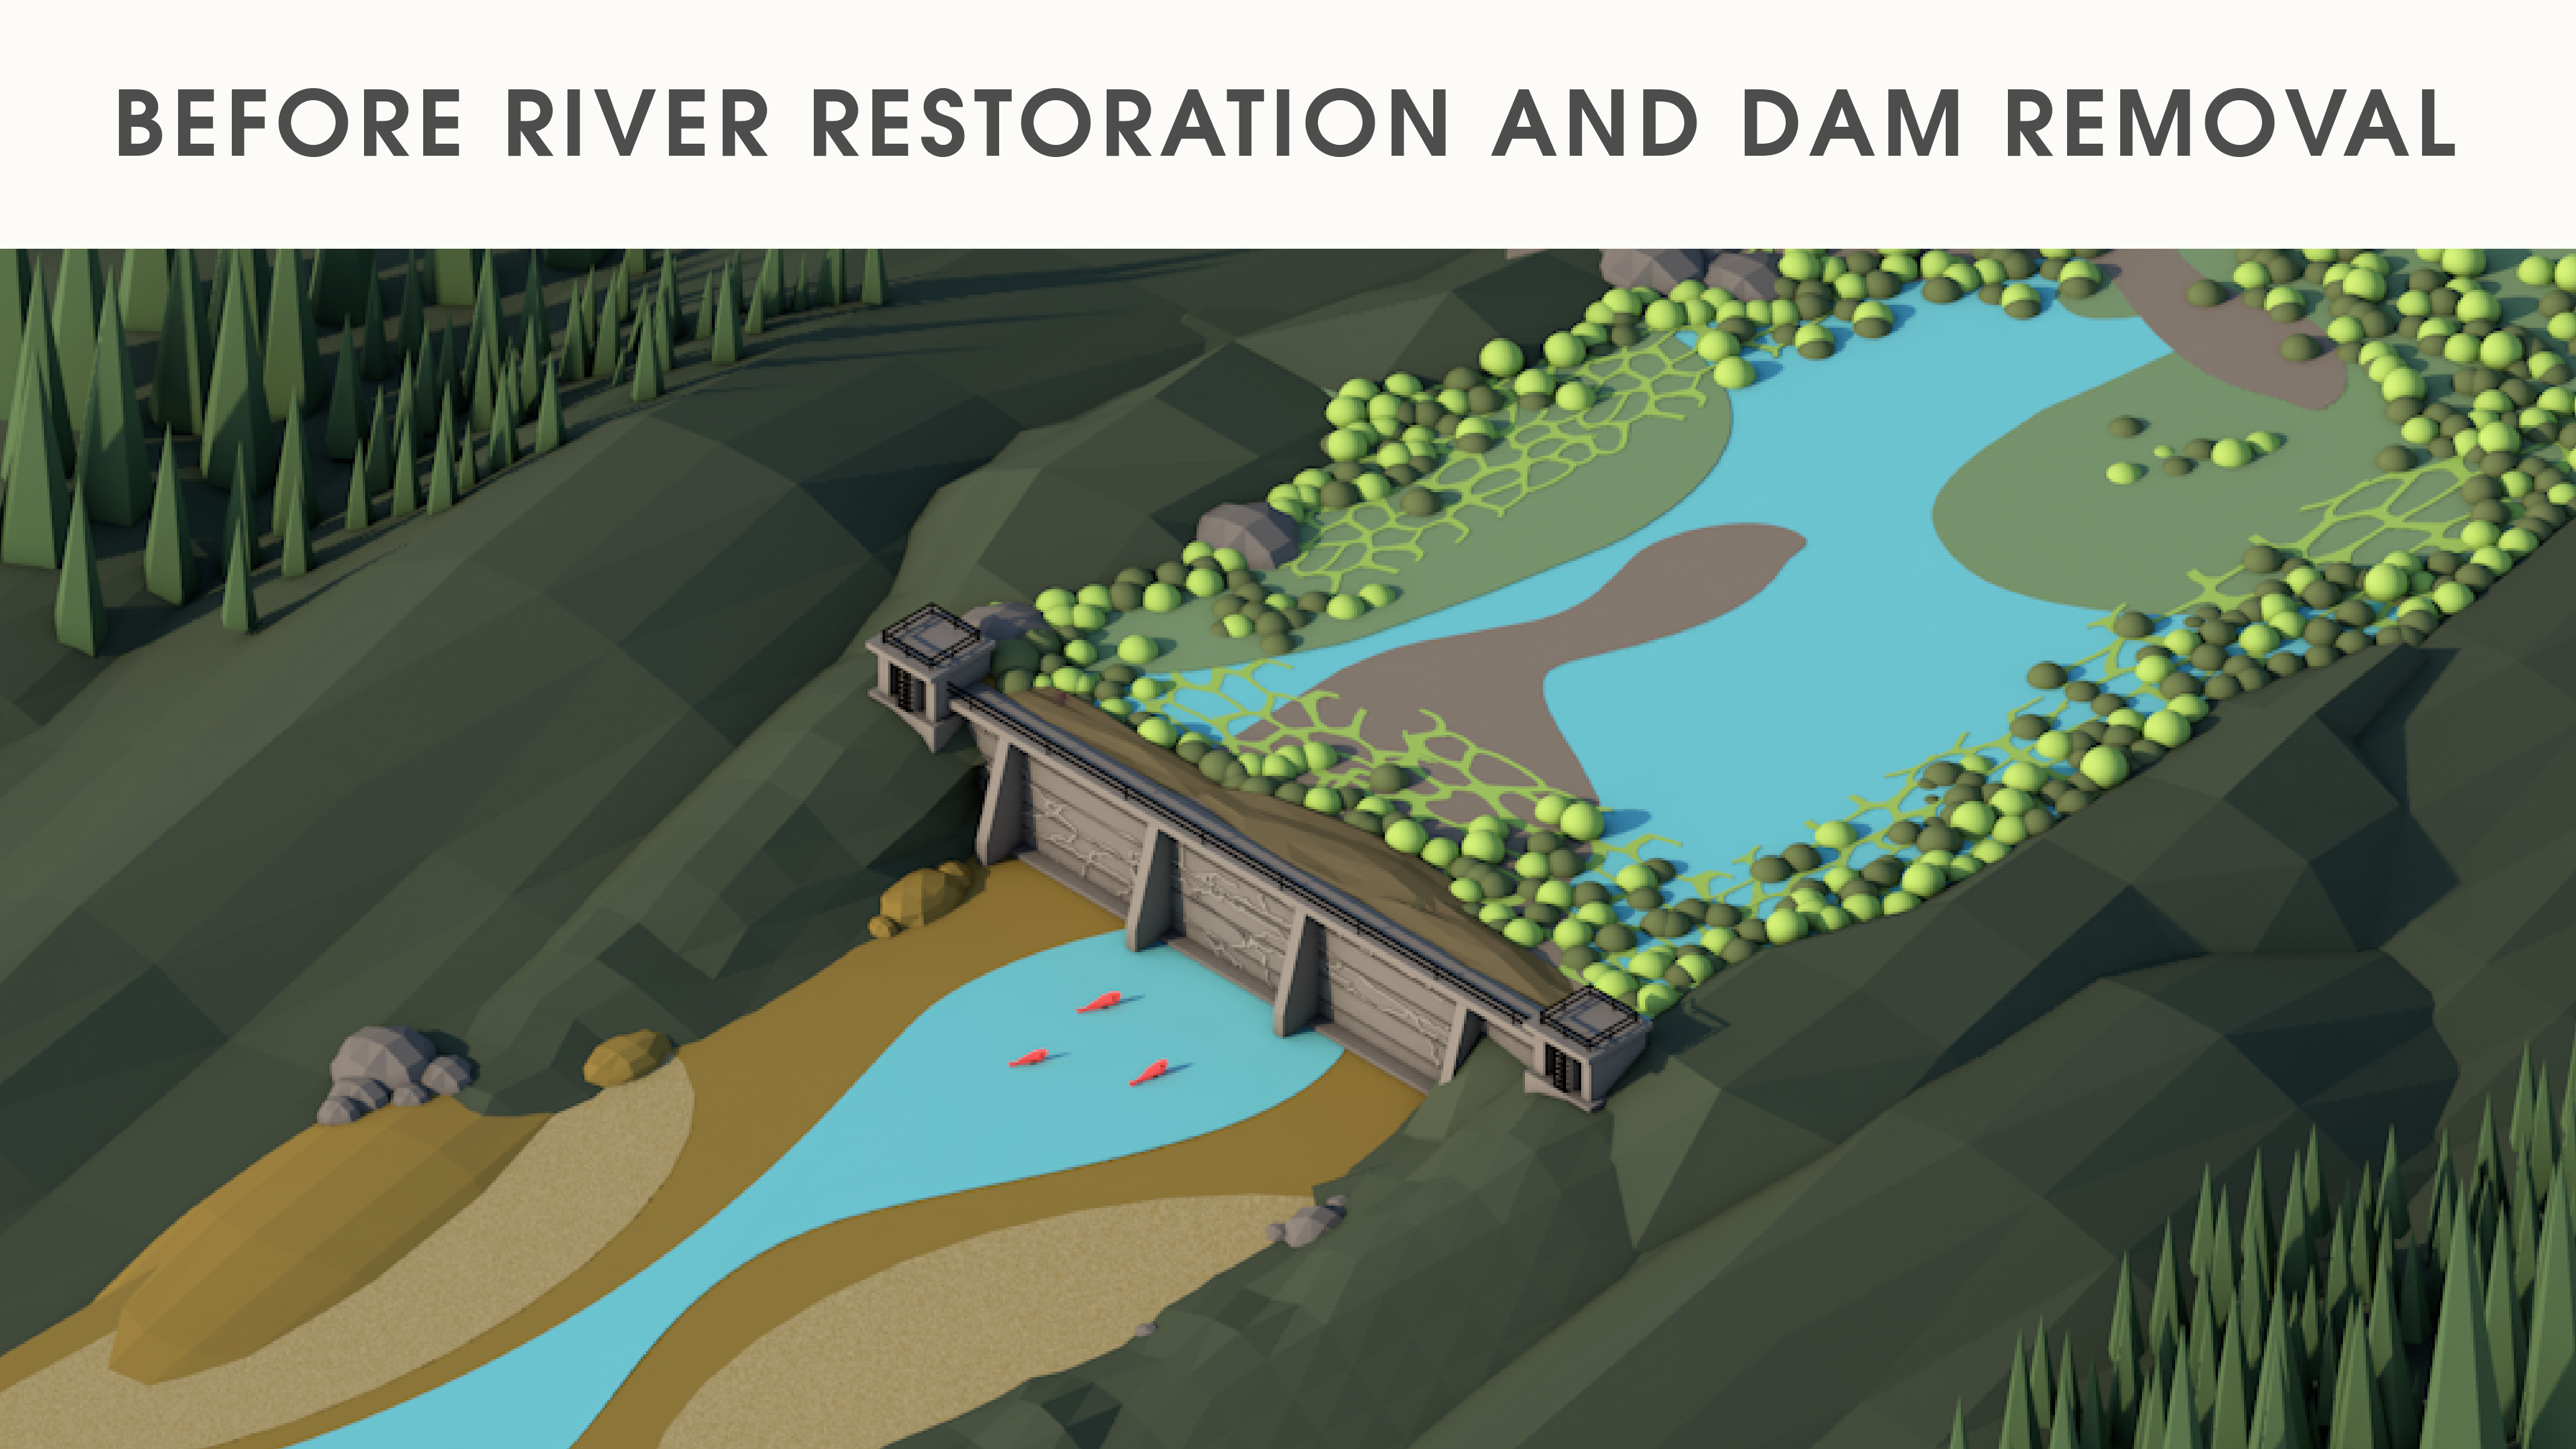 Before river restoration and dam removal graphic